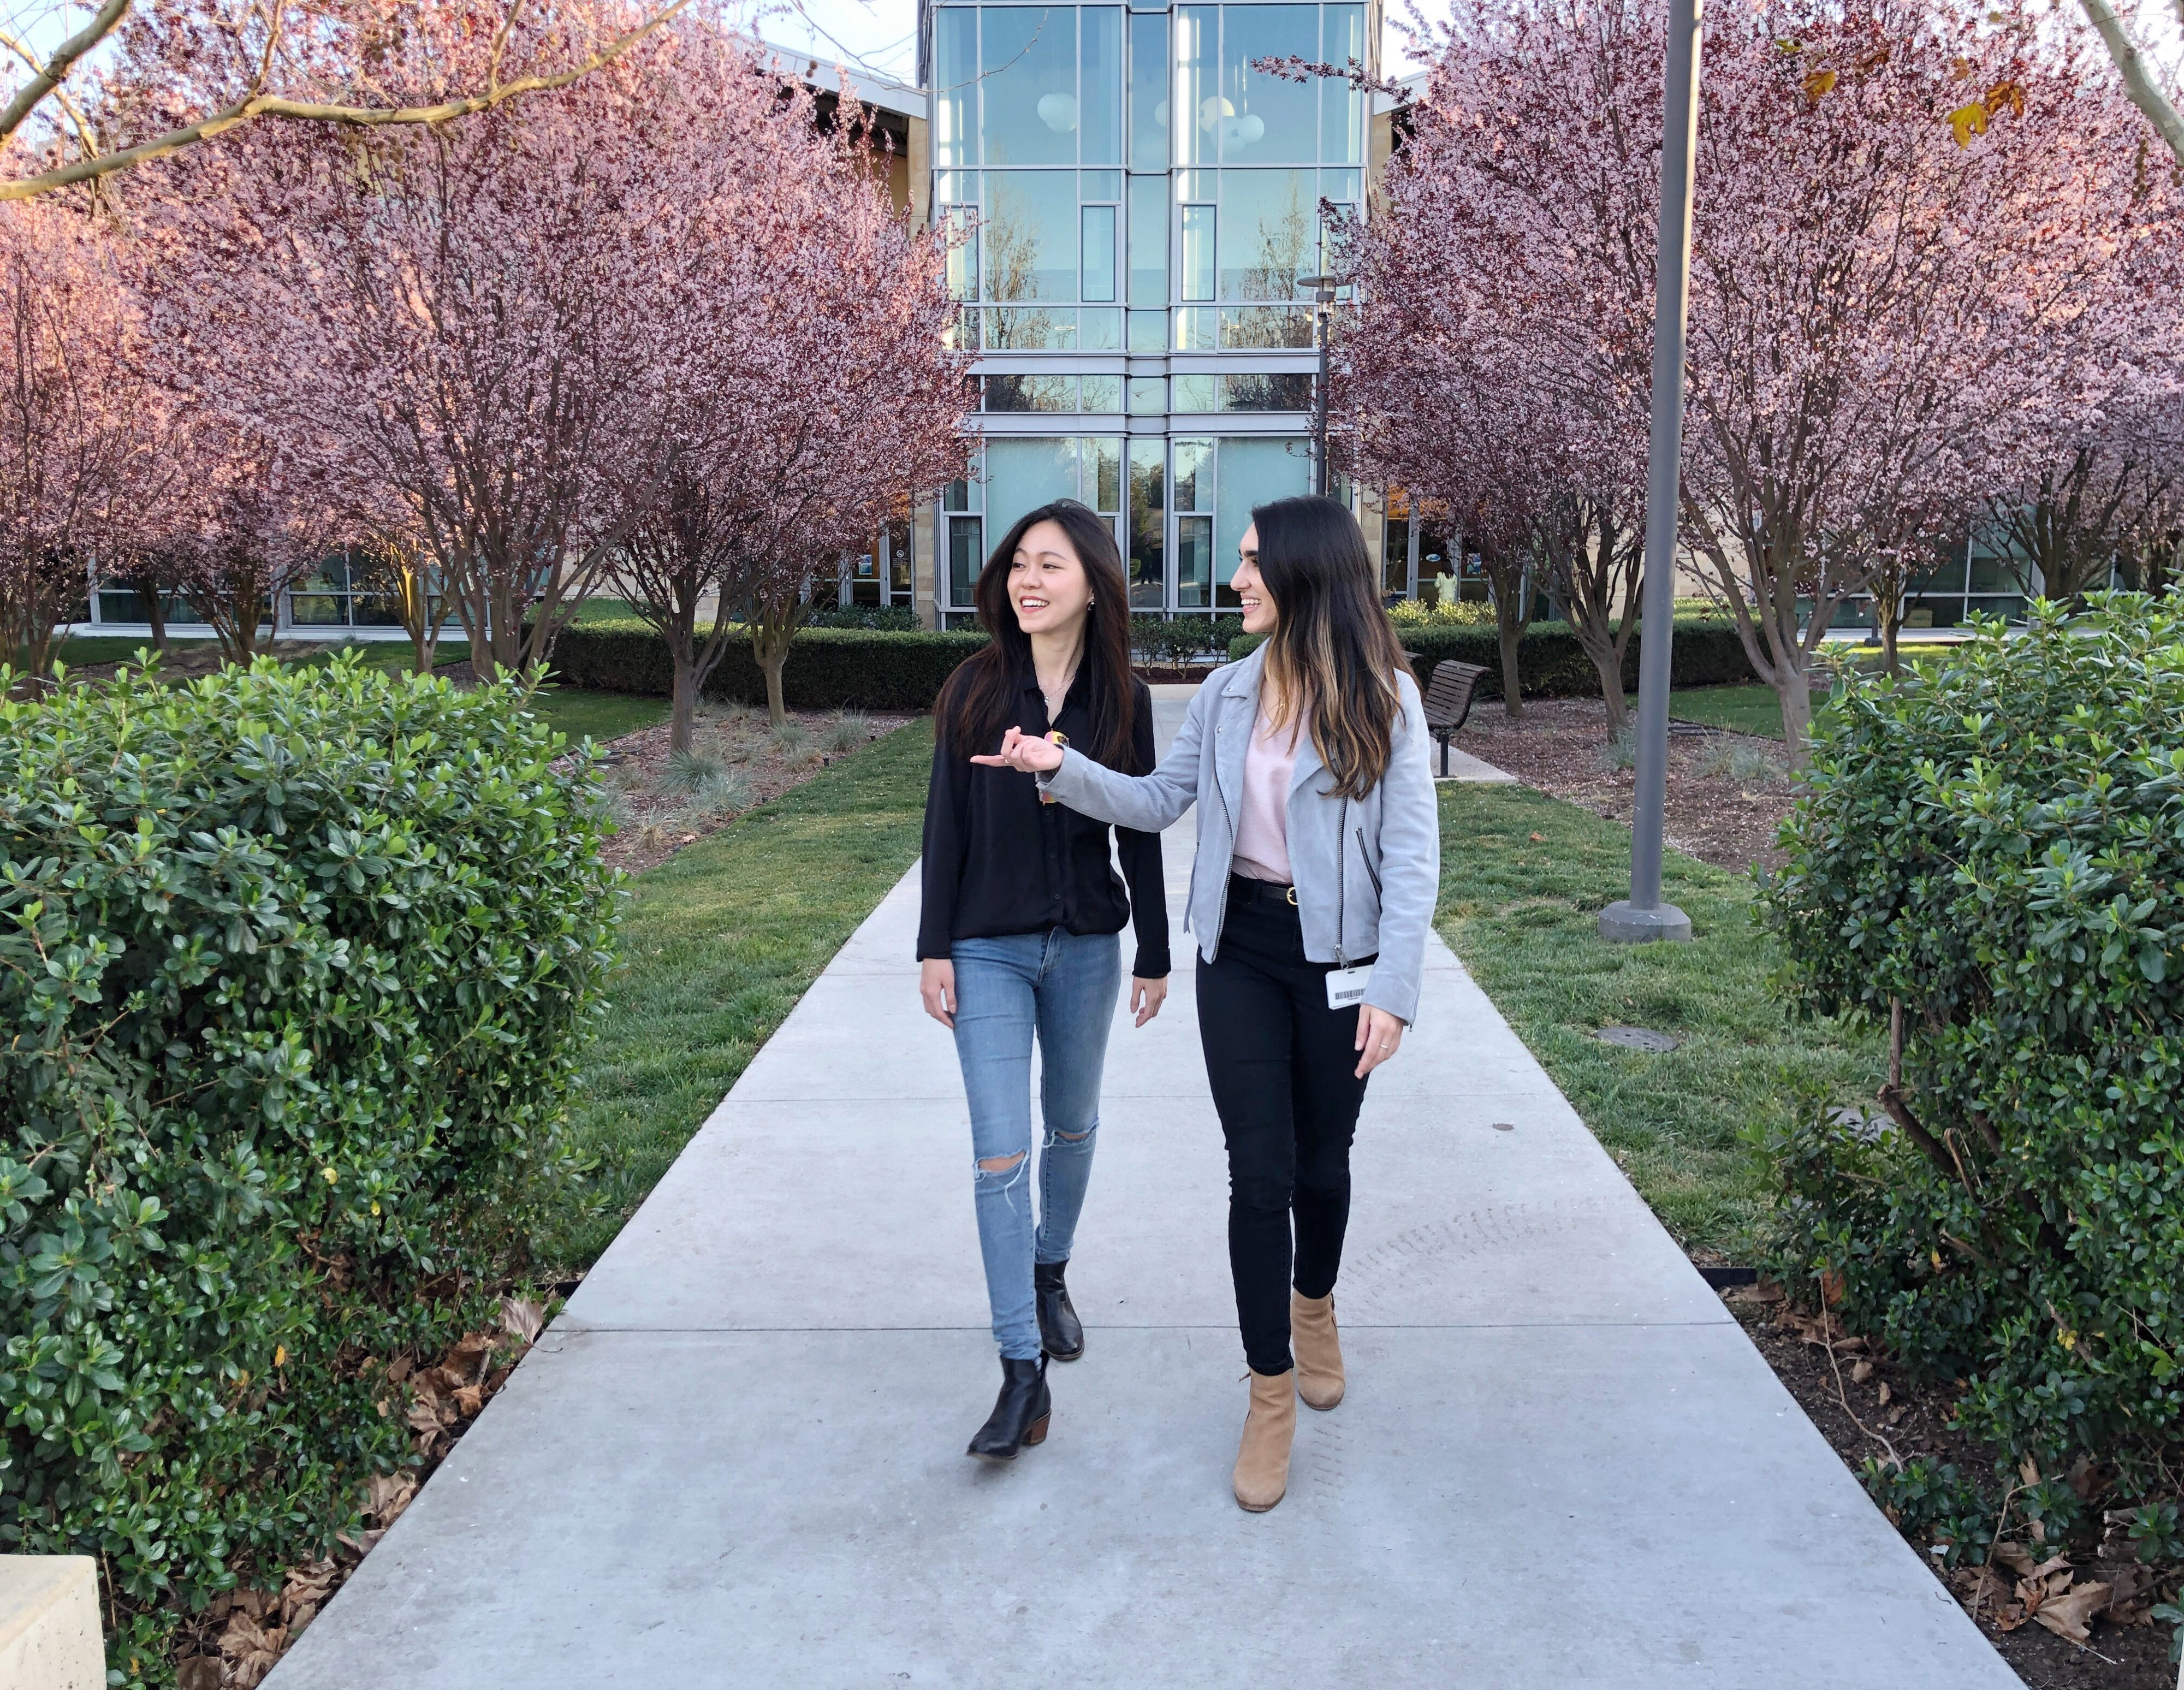 April being taken on a tour of the VMware campus by a designer on the team, with cherry blossom trees along a pathway